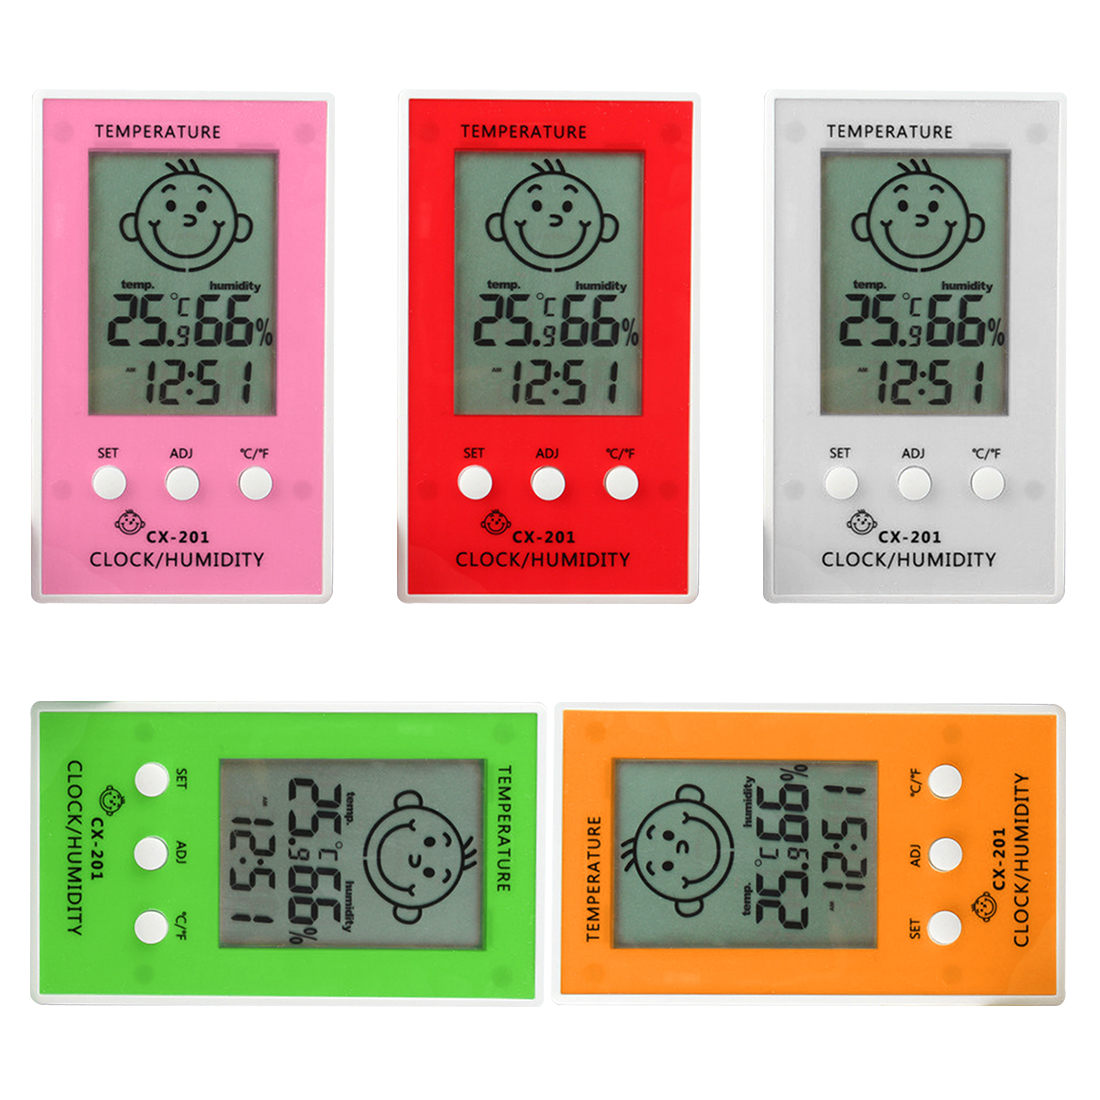 Digital LCD Thermometer Hygrometer Baby Smile Crying Face Humidity Meter Weather Station Tester Temperature clock free shippingDigital LCD Thermometer Hygrometer Baby Smile Crying Face Humidity Meter Weather Station Tester Temperature clock free shipping